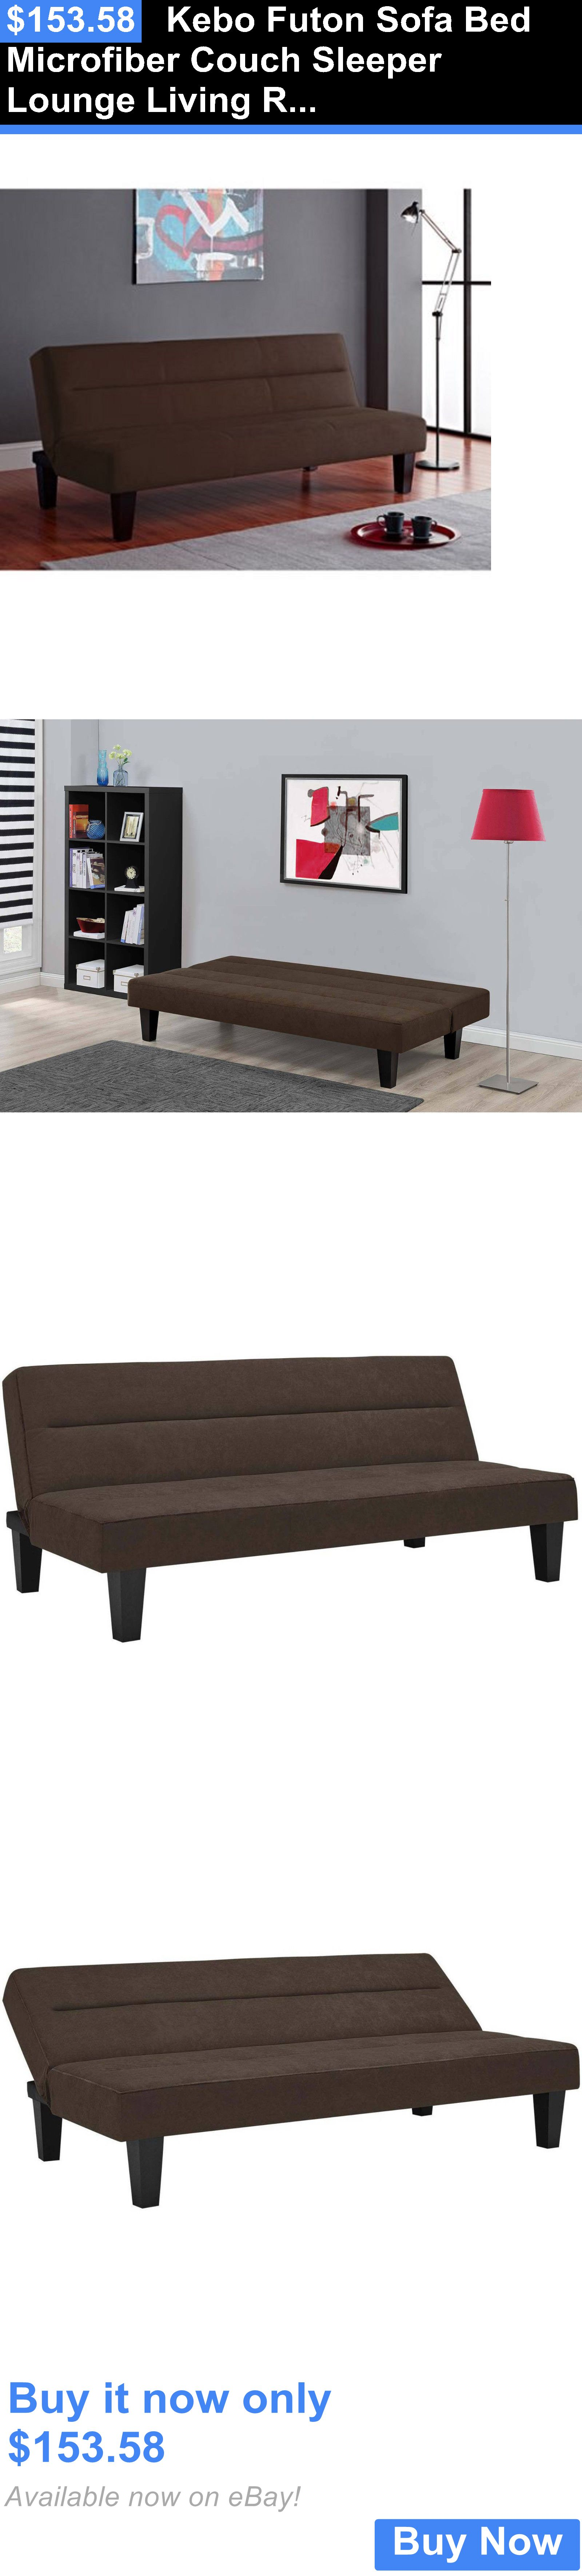 on black shape microfiber rectangular some sofa people angled couch plus sat legs design white outstanding be pillow modern can with bed